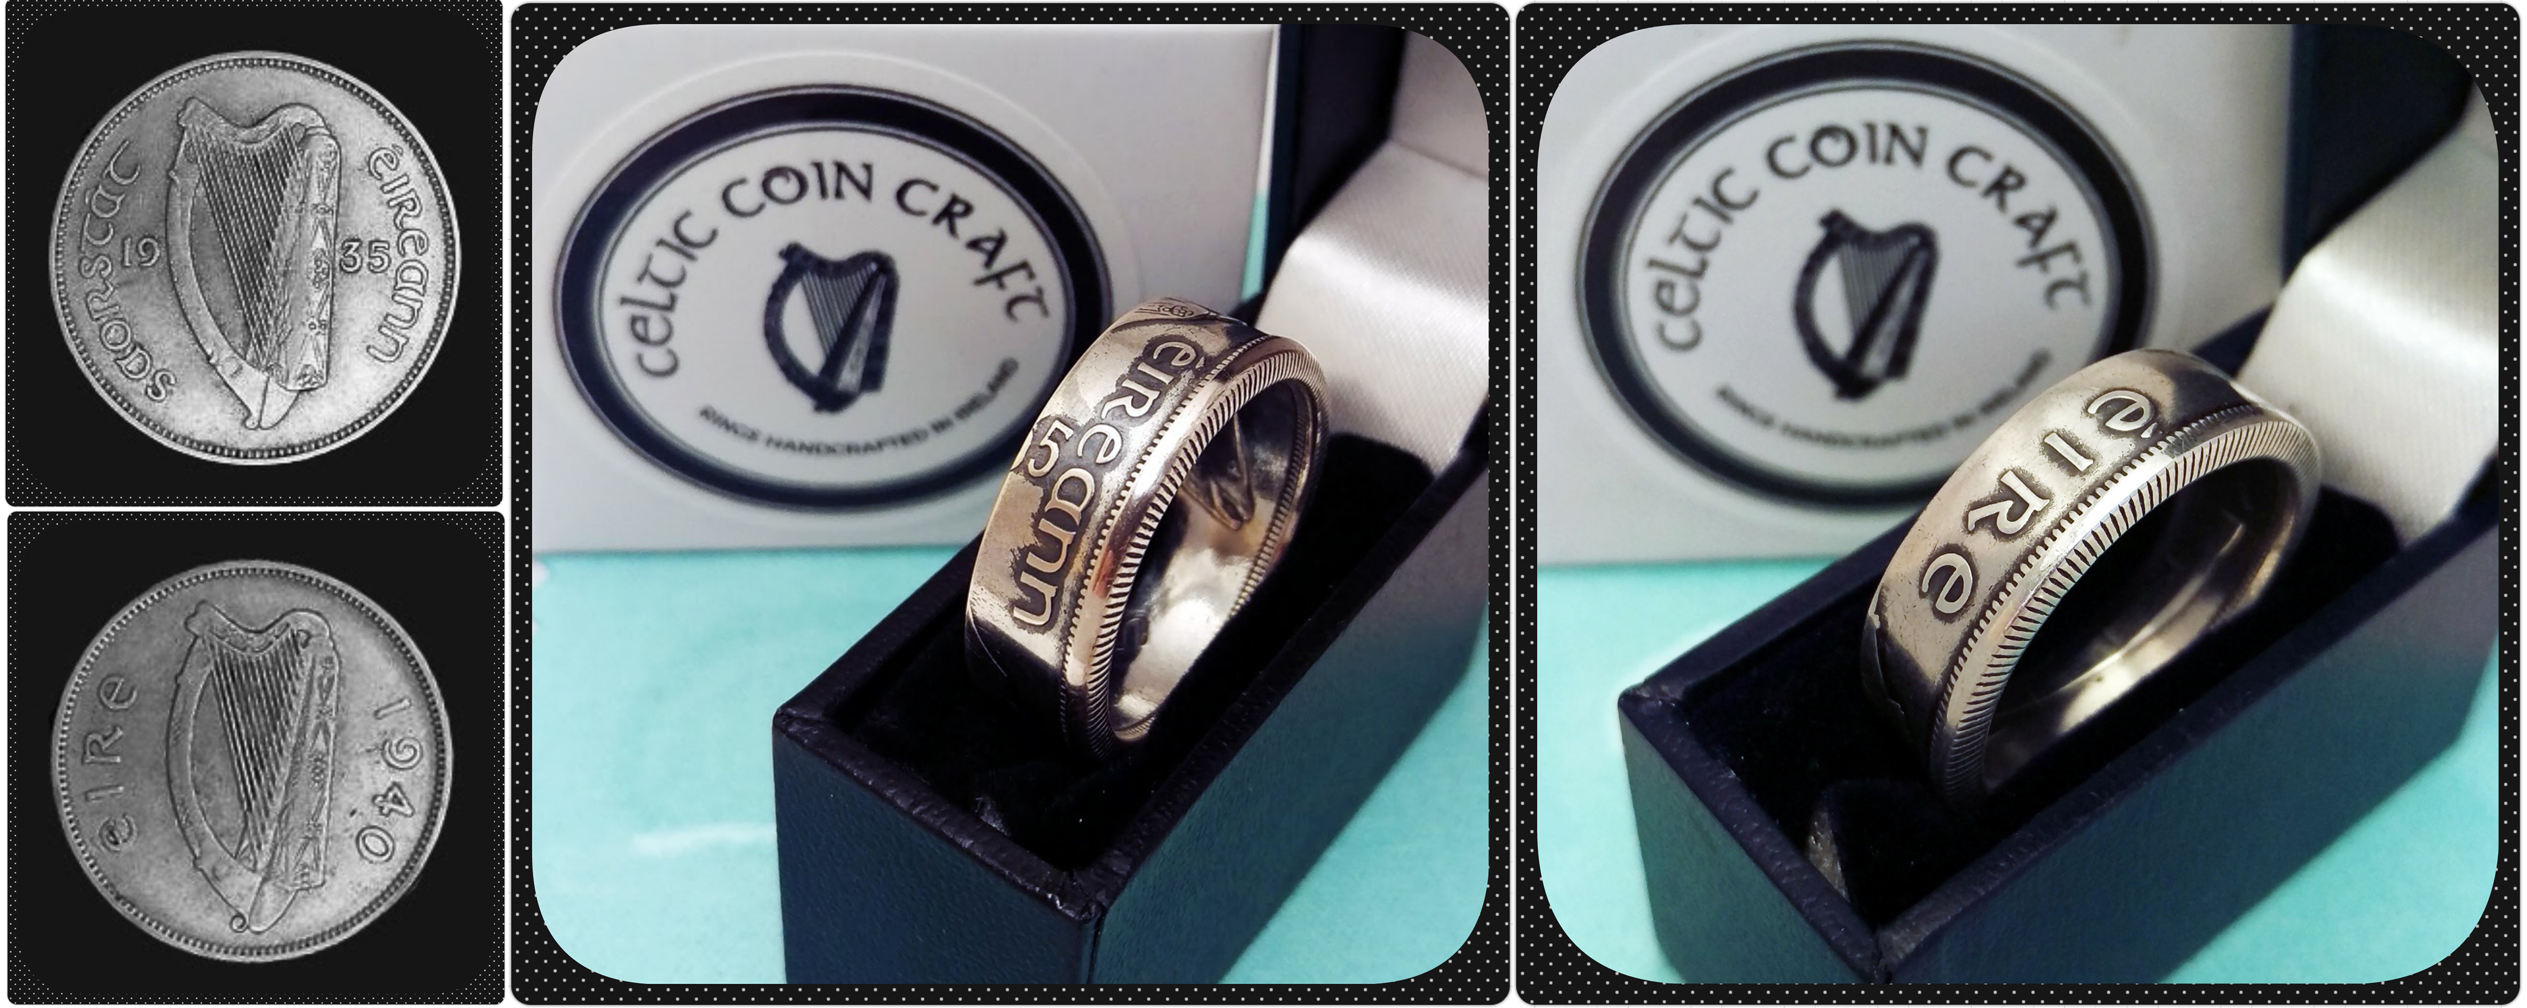 Two rings made from coins by Celtic Coin Craft